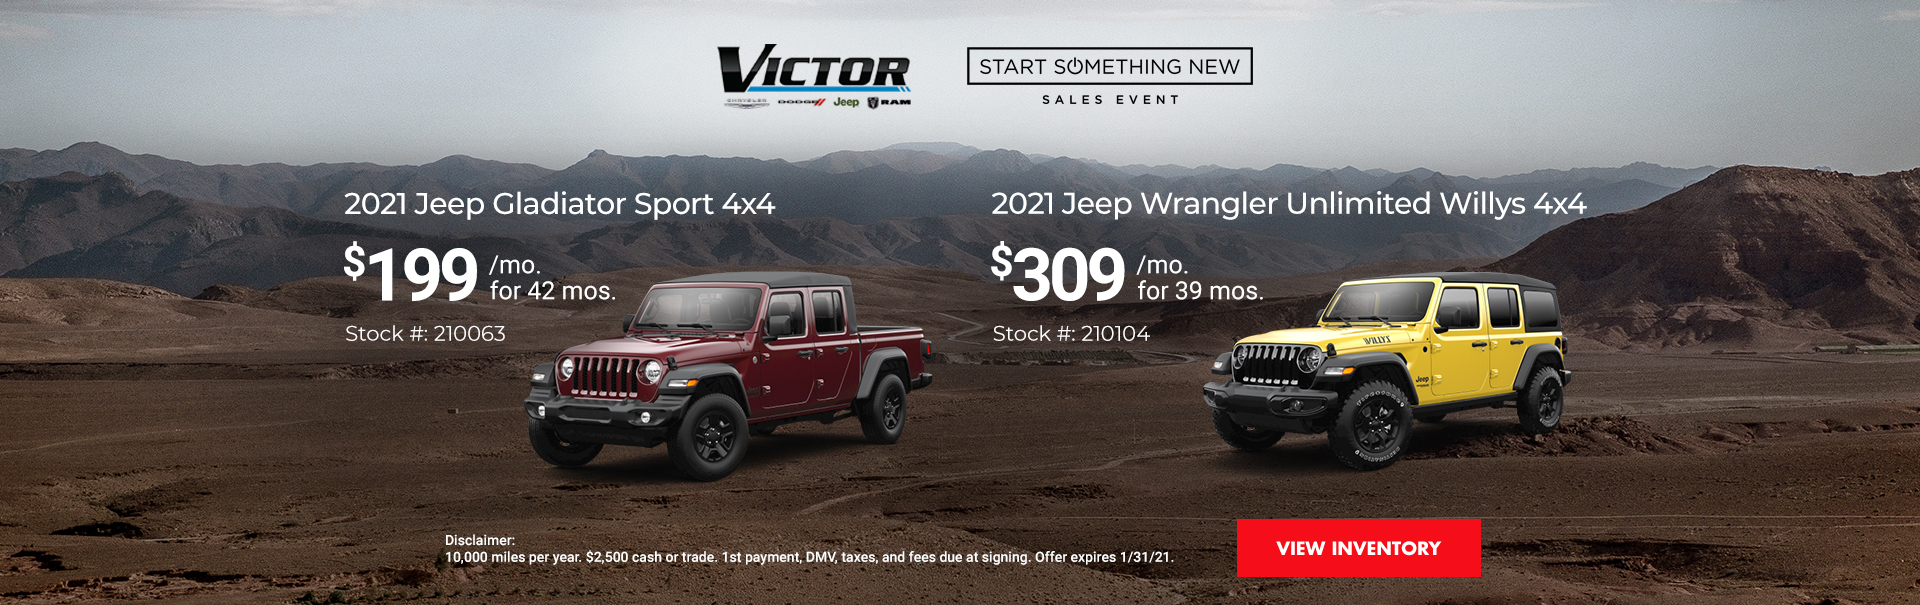 2021 Jeep Gladiator Sport and 2021 Jeep Wrangler Unlimited Willys